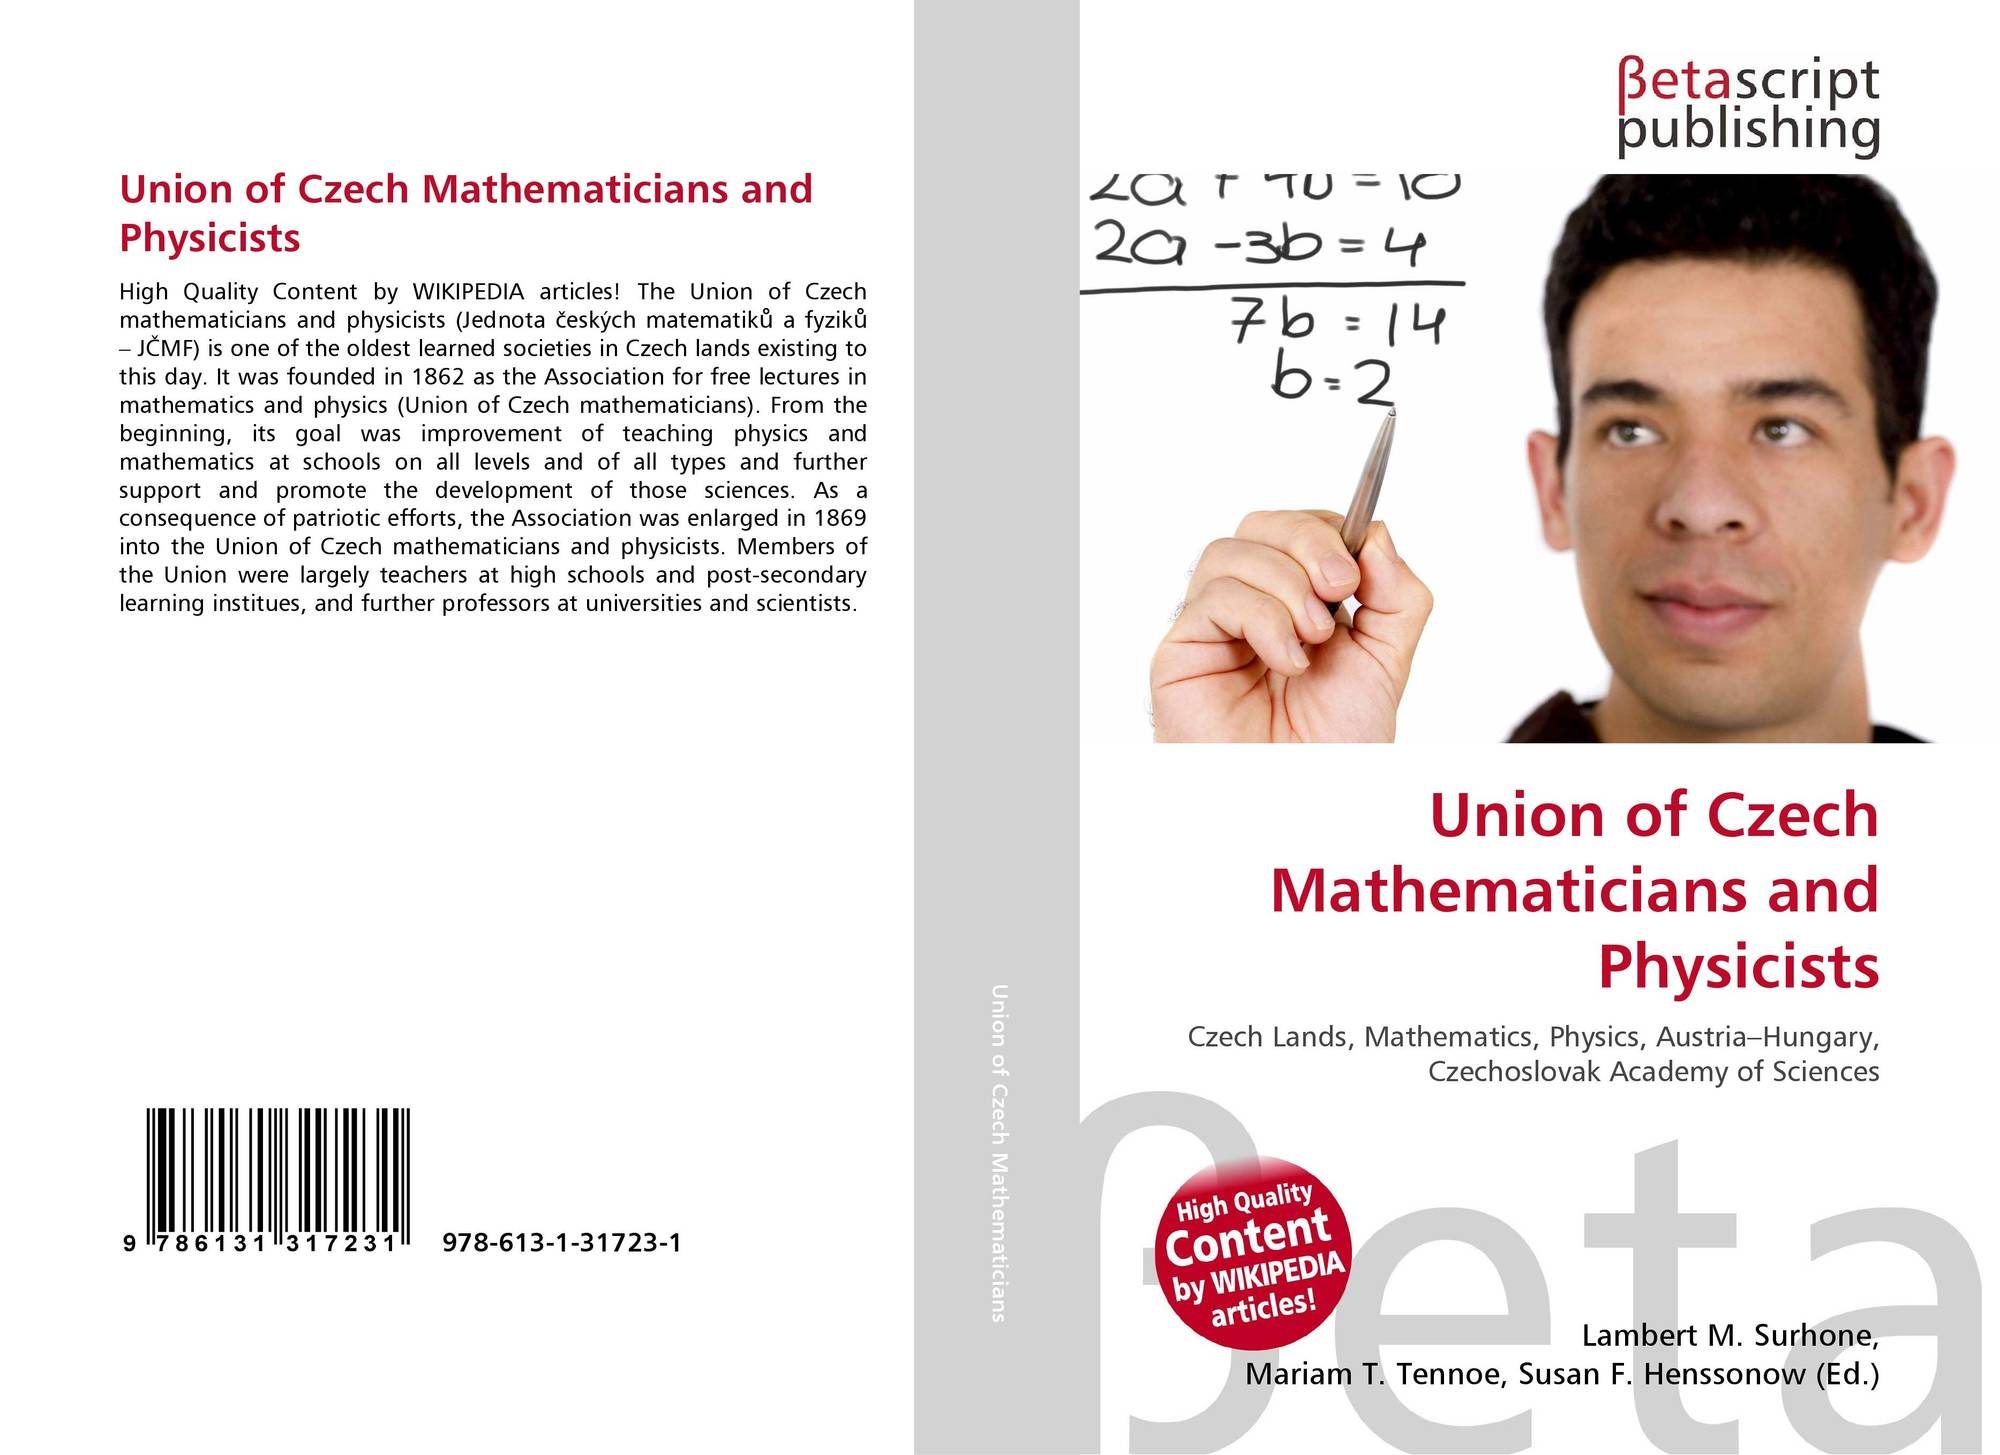 Union of Czech Mathematicians and Physicists, 978-613-1